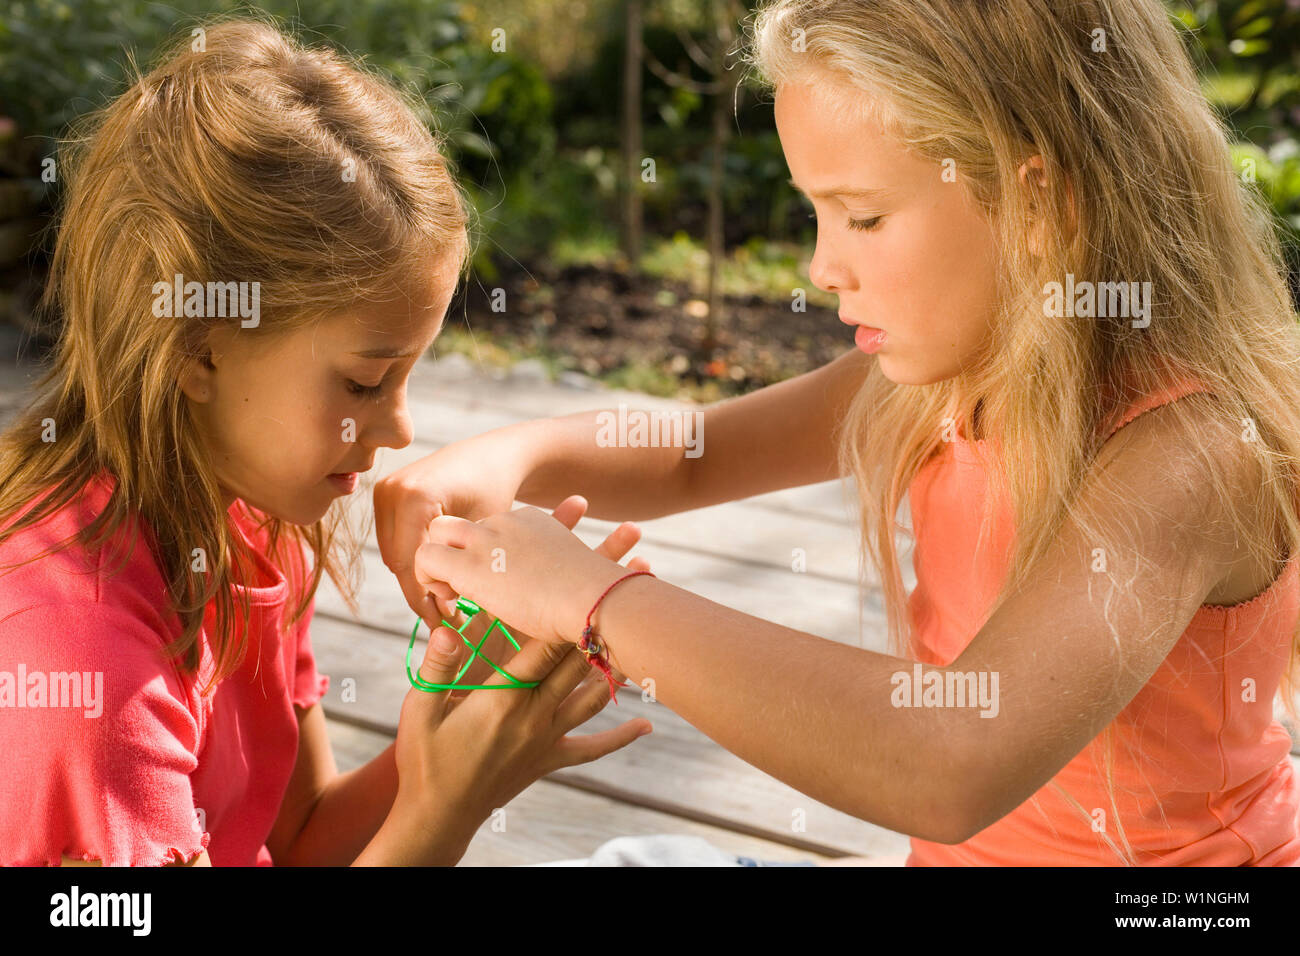 Two girls playing cat's cradle, children's birthday party - Stock Image